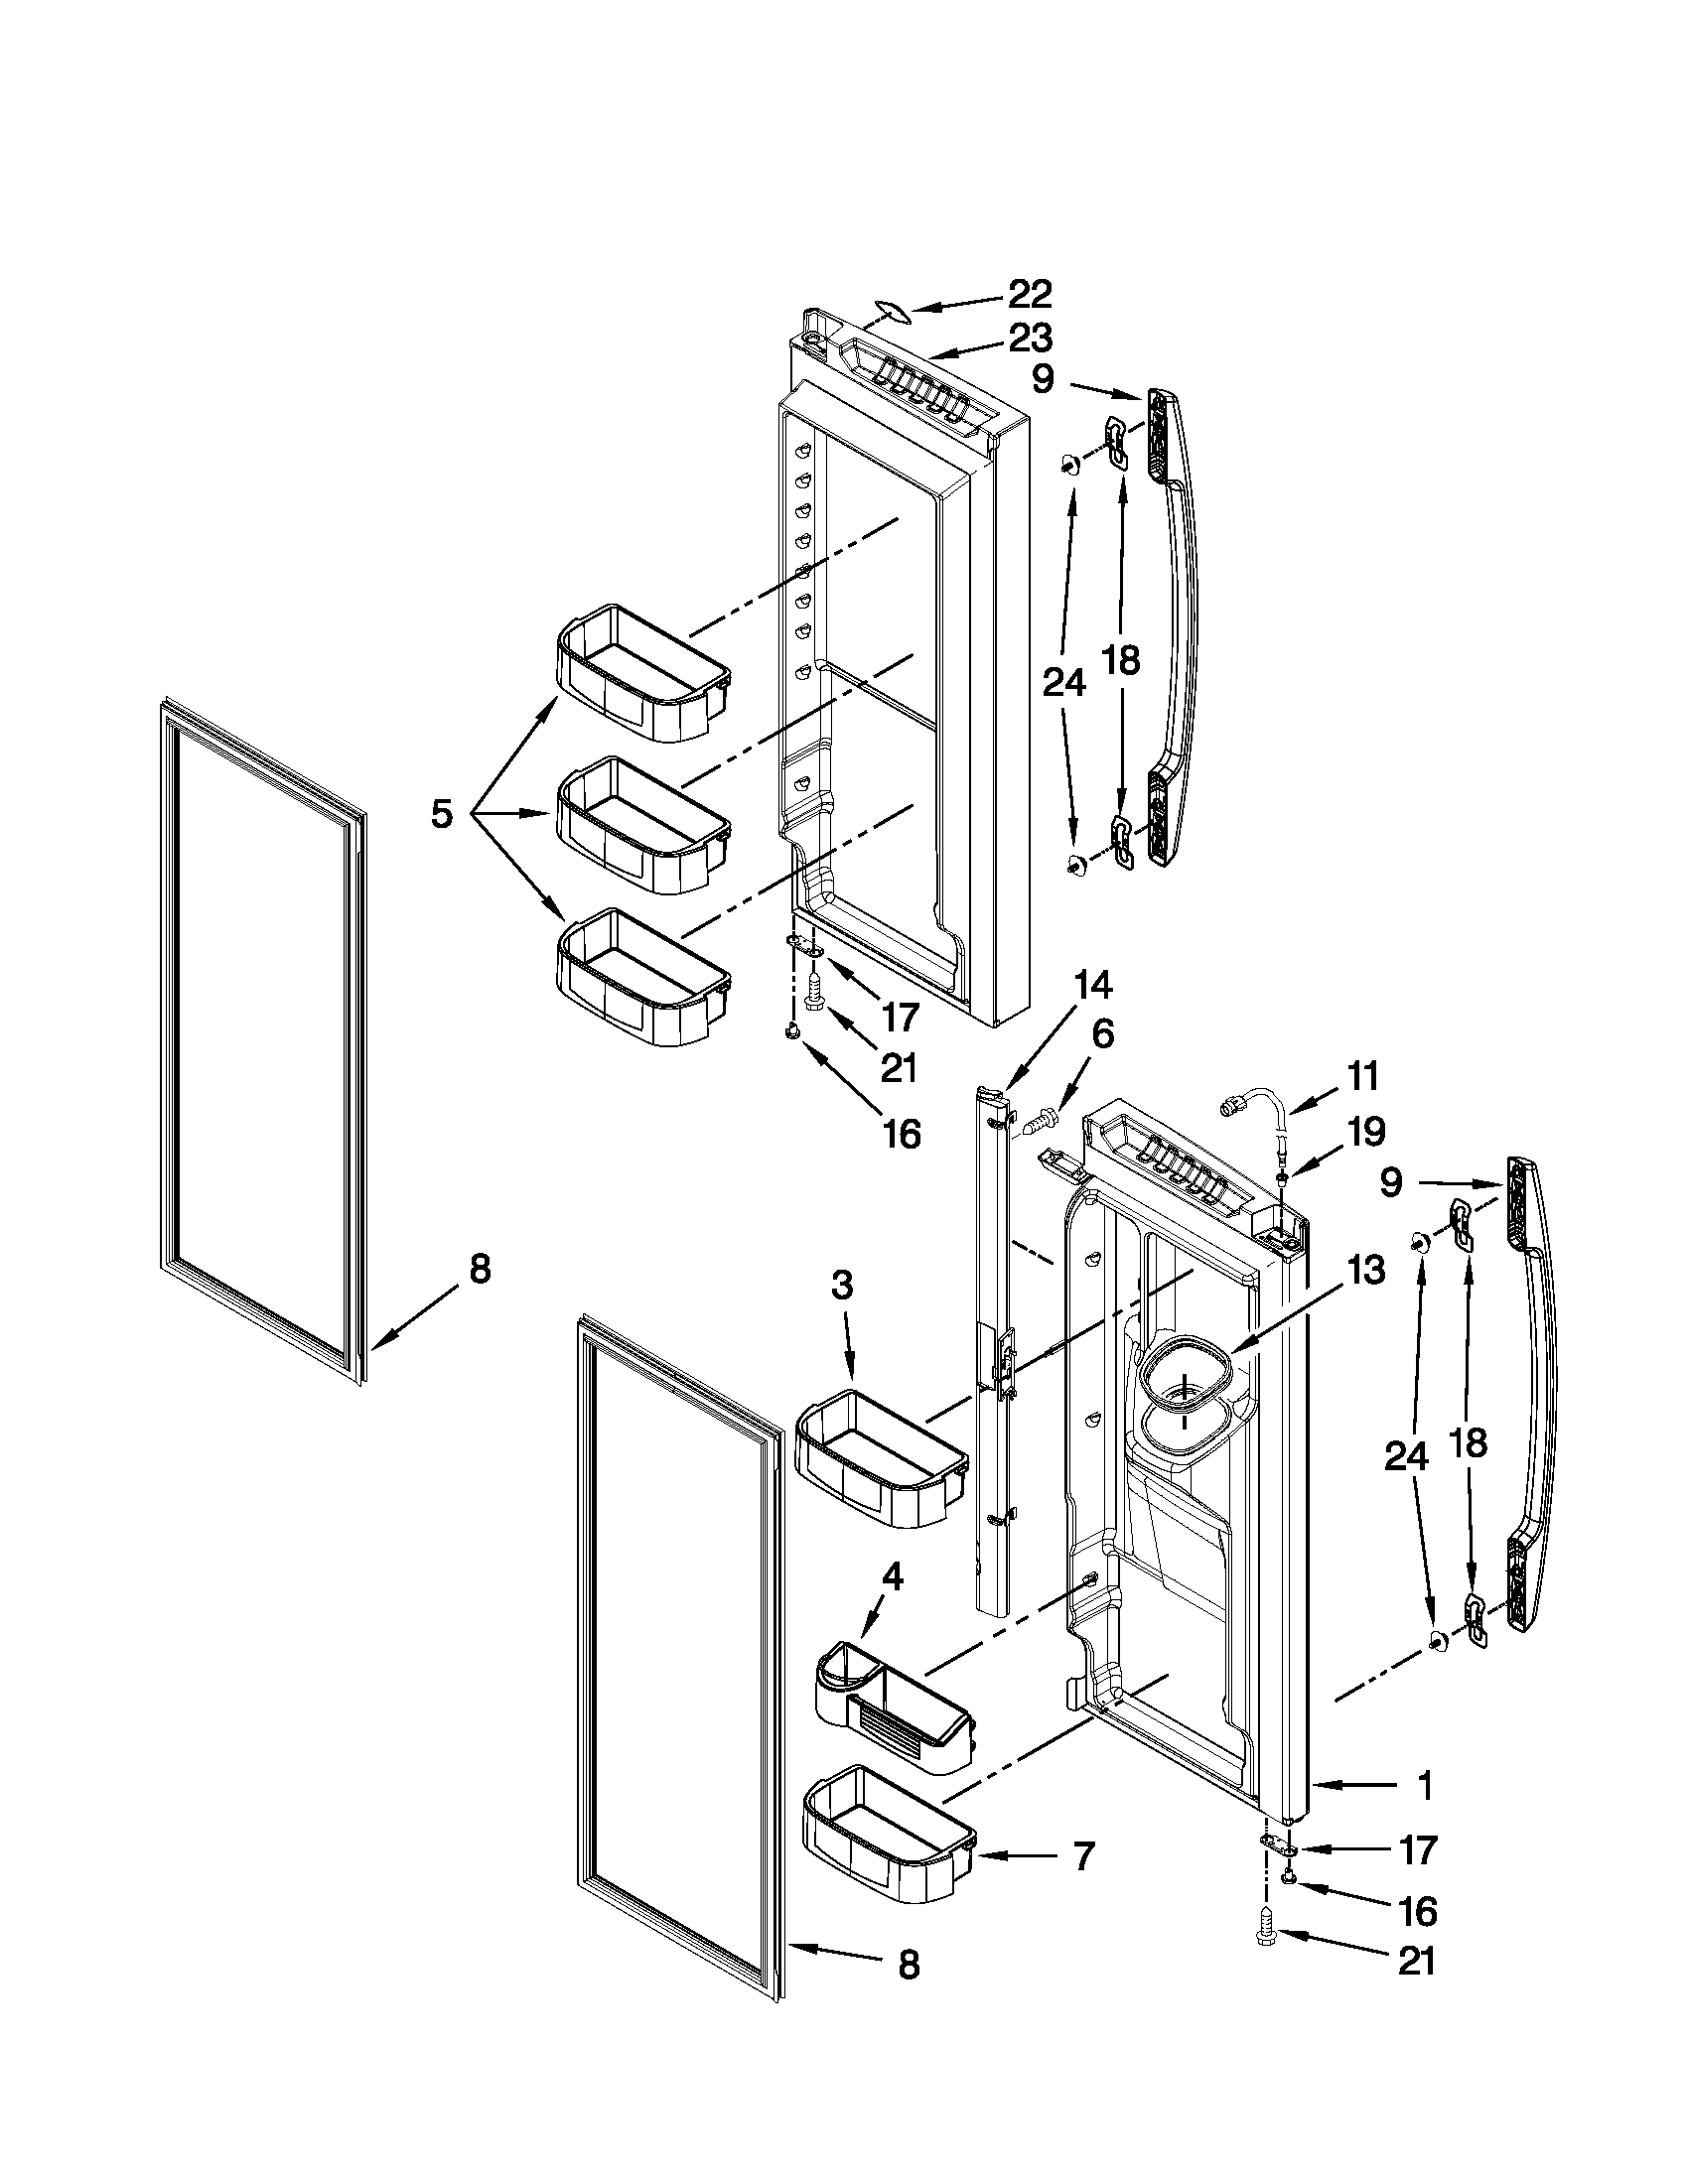 REFRIGERATOR DOOR PARTS Diagram & Parts List for Model